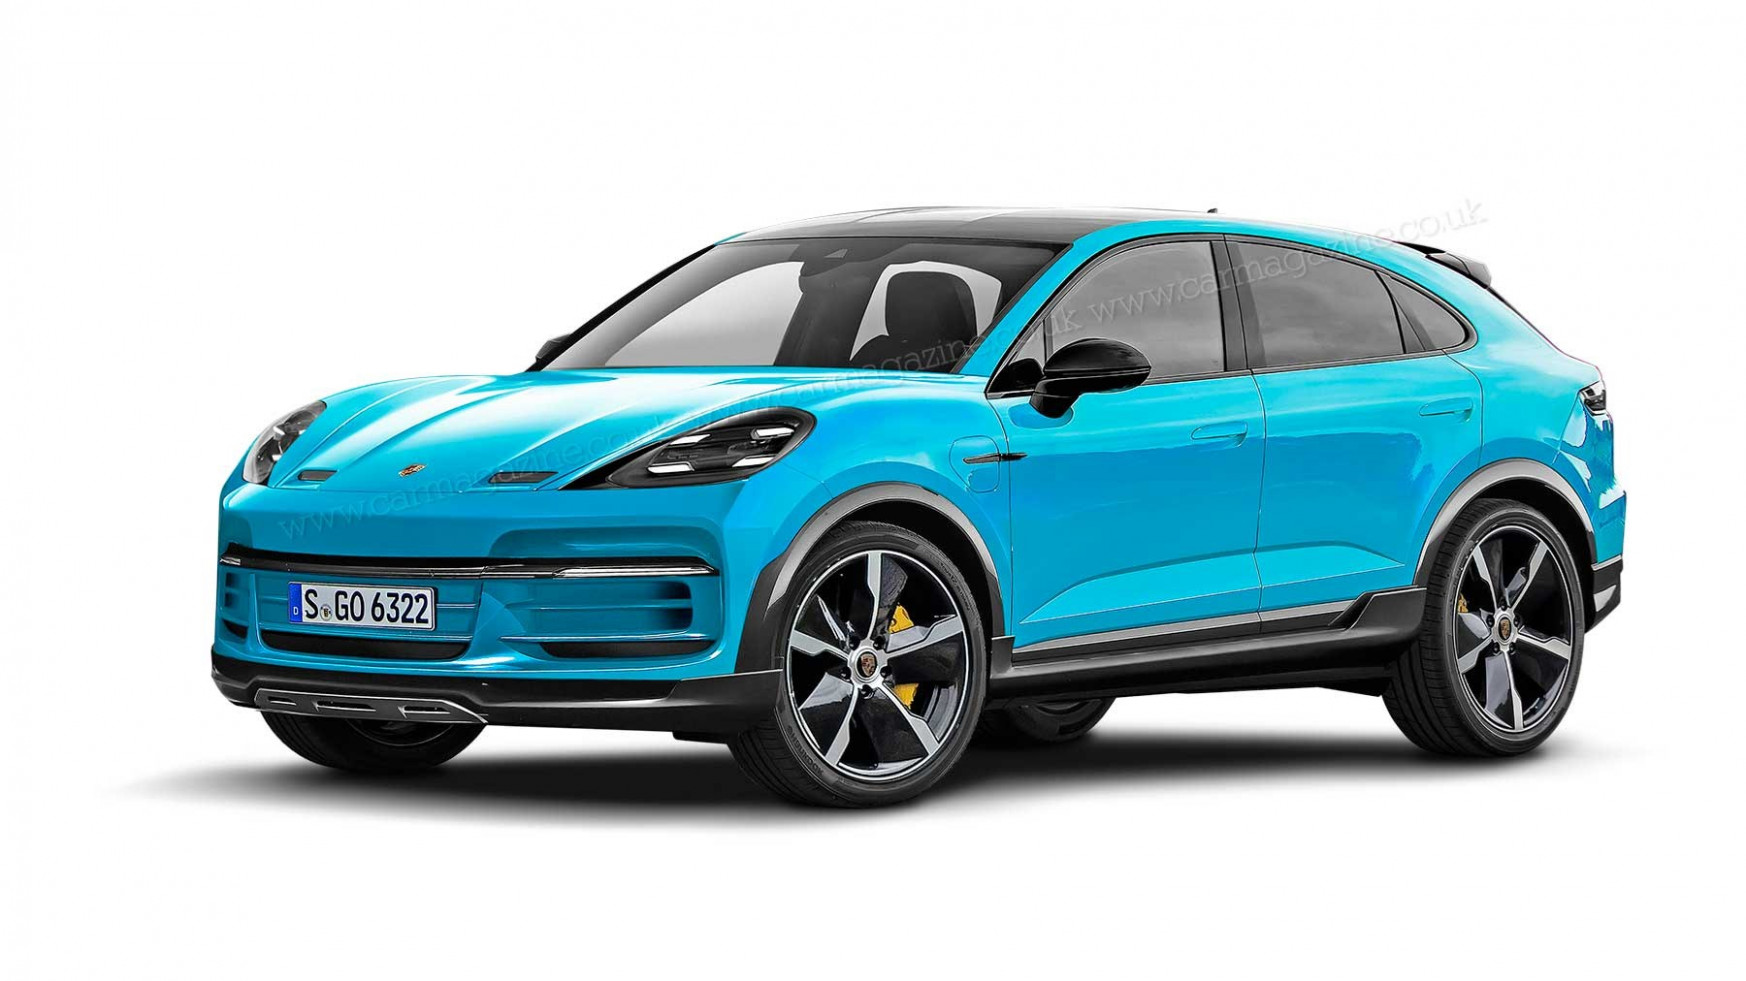 Exterior and Interior 2022 Porsche Macan Turbo